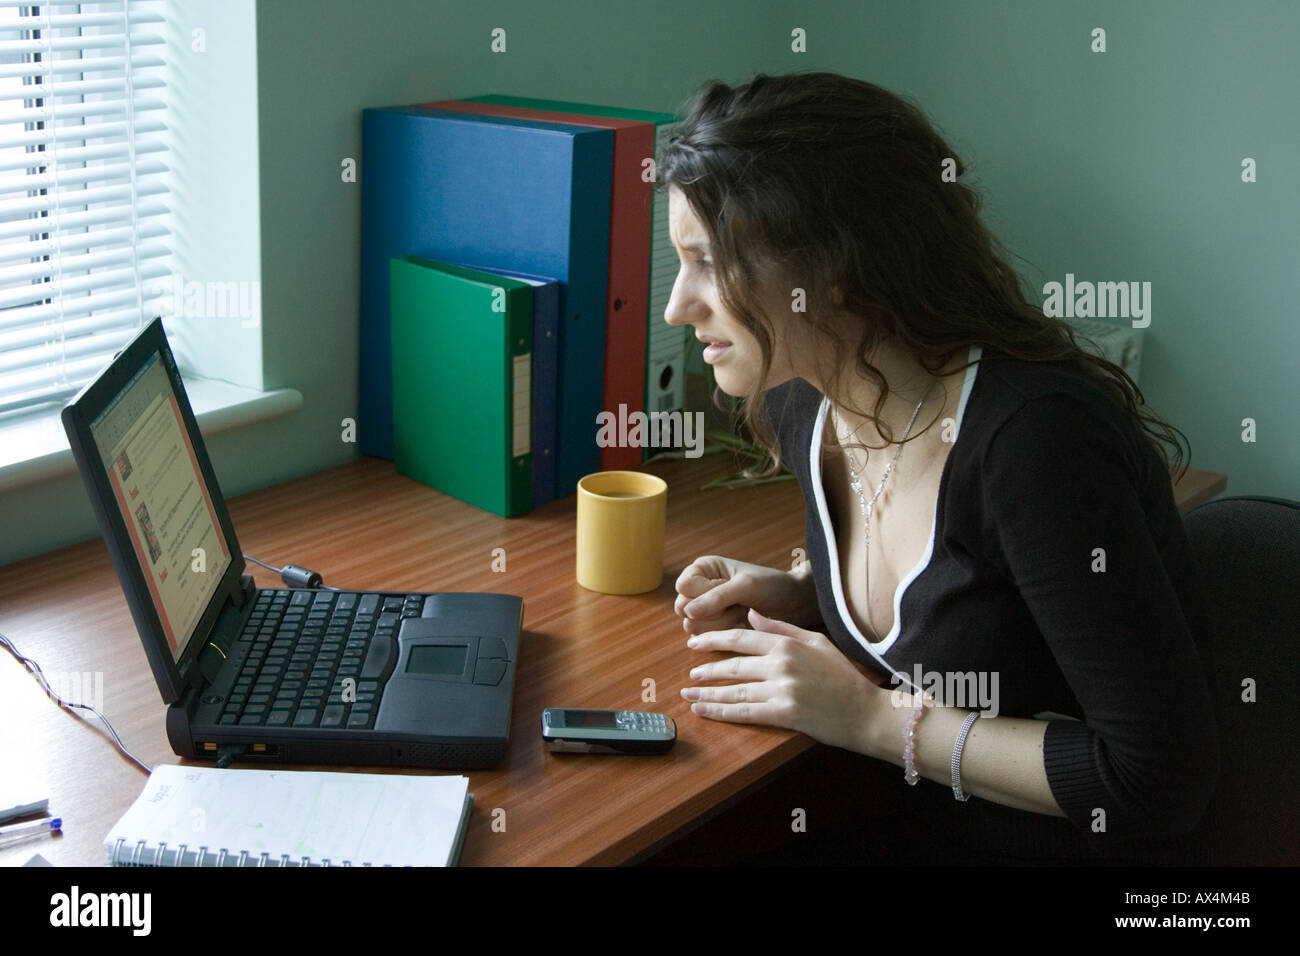 A frustrated woman having problems using a computer - Stock Image